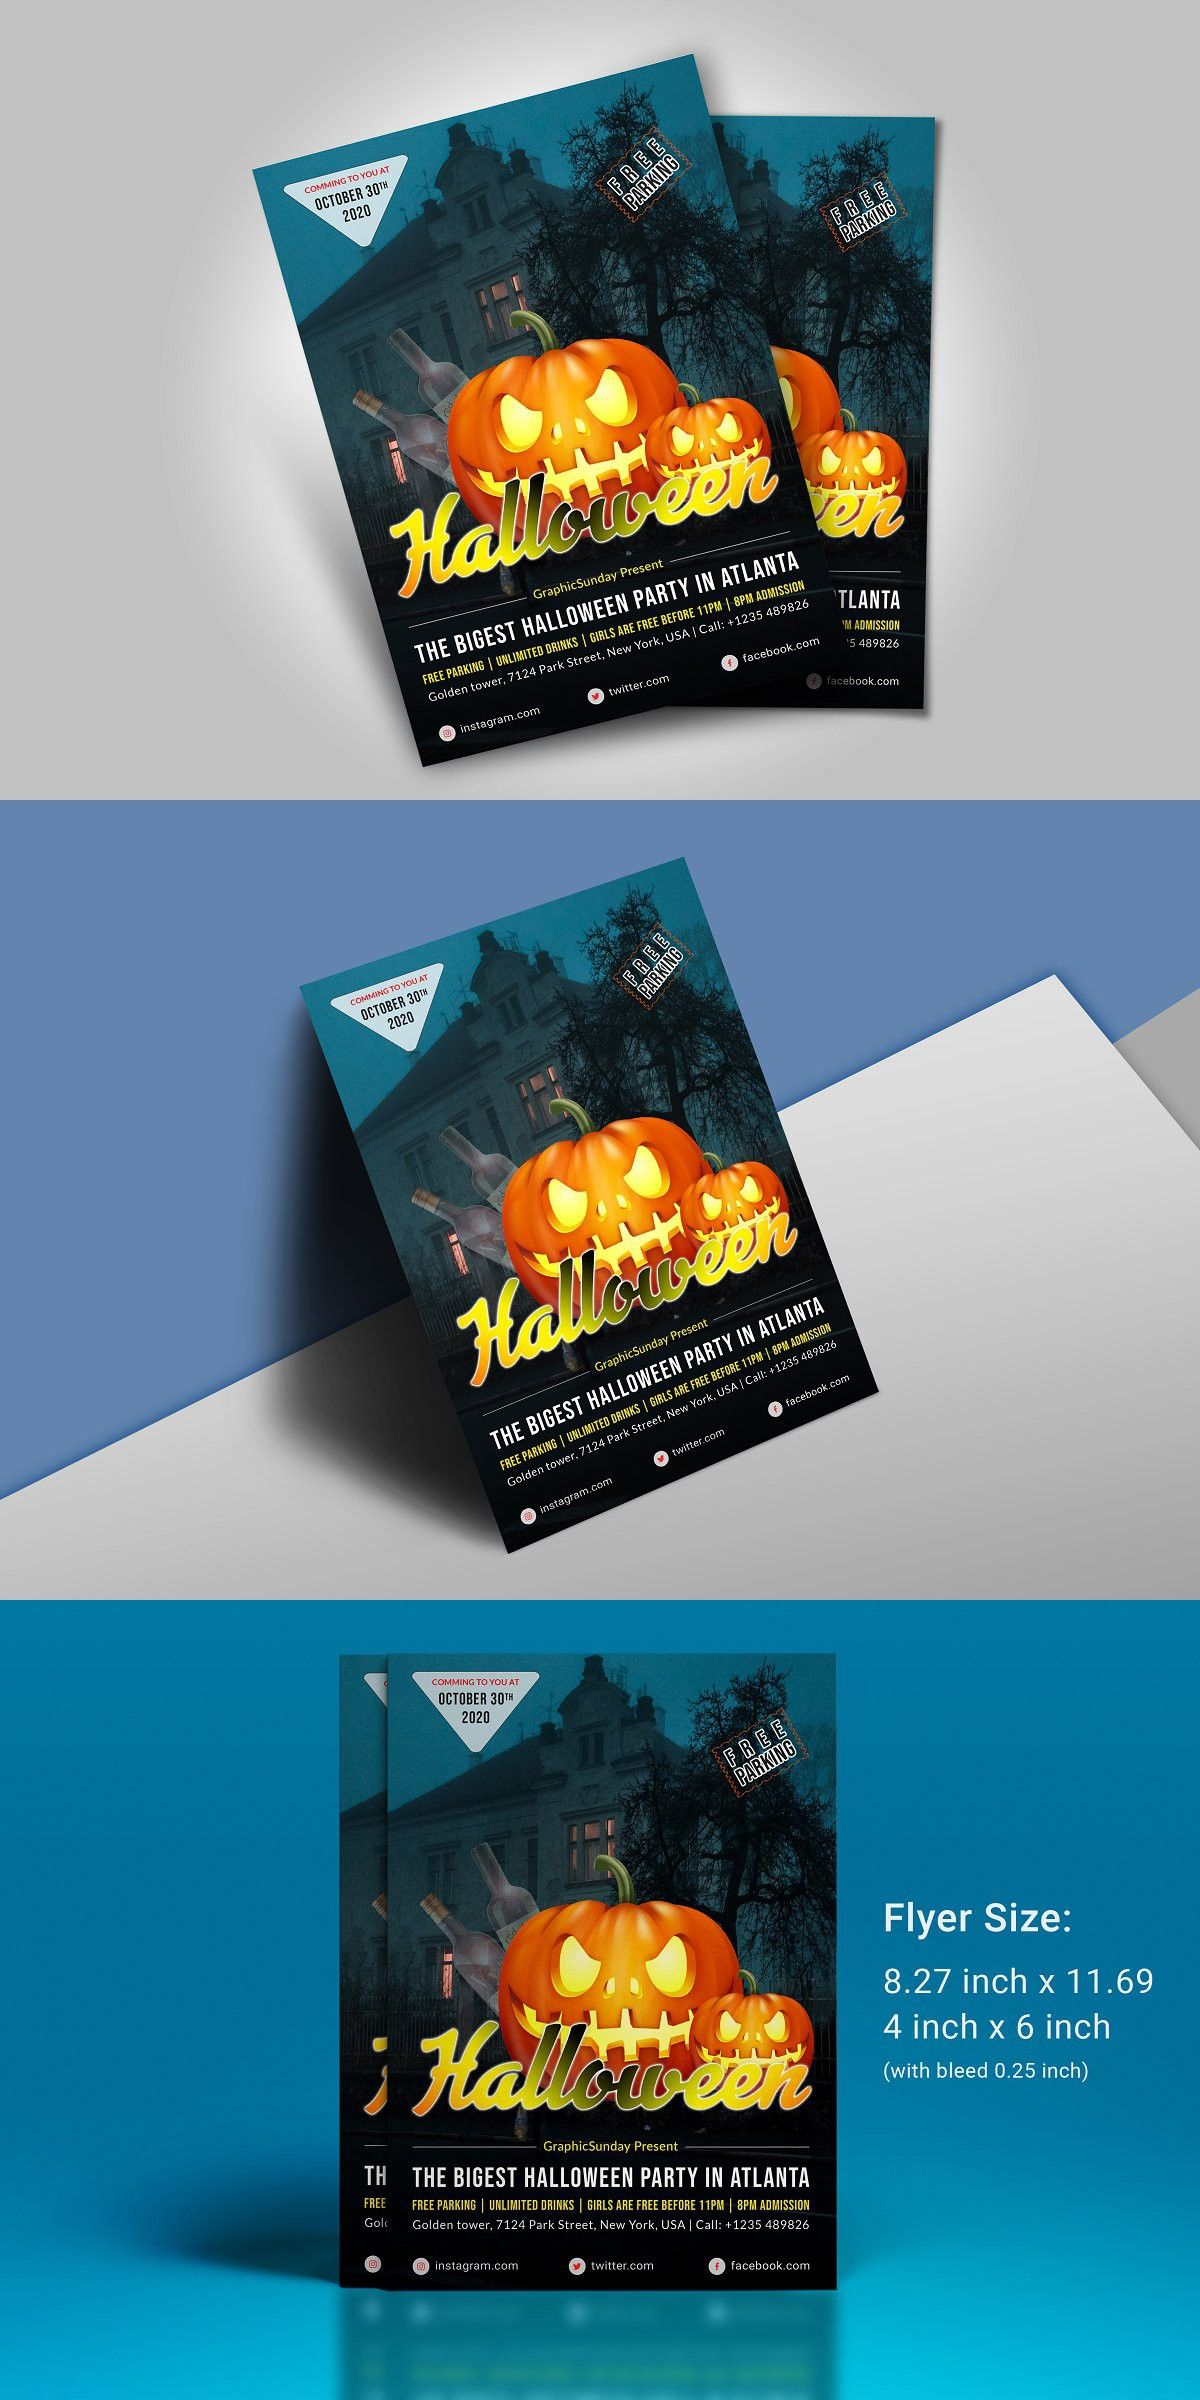 Halloween 2020 Party Flyer Halloween Flyer in 2020 | Halloween flyer, Halloween party flyer